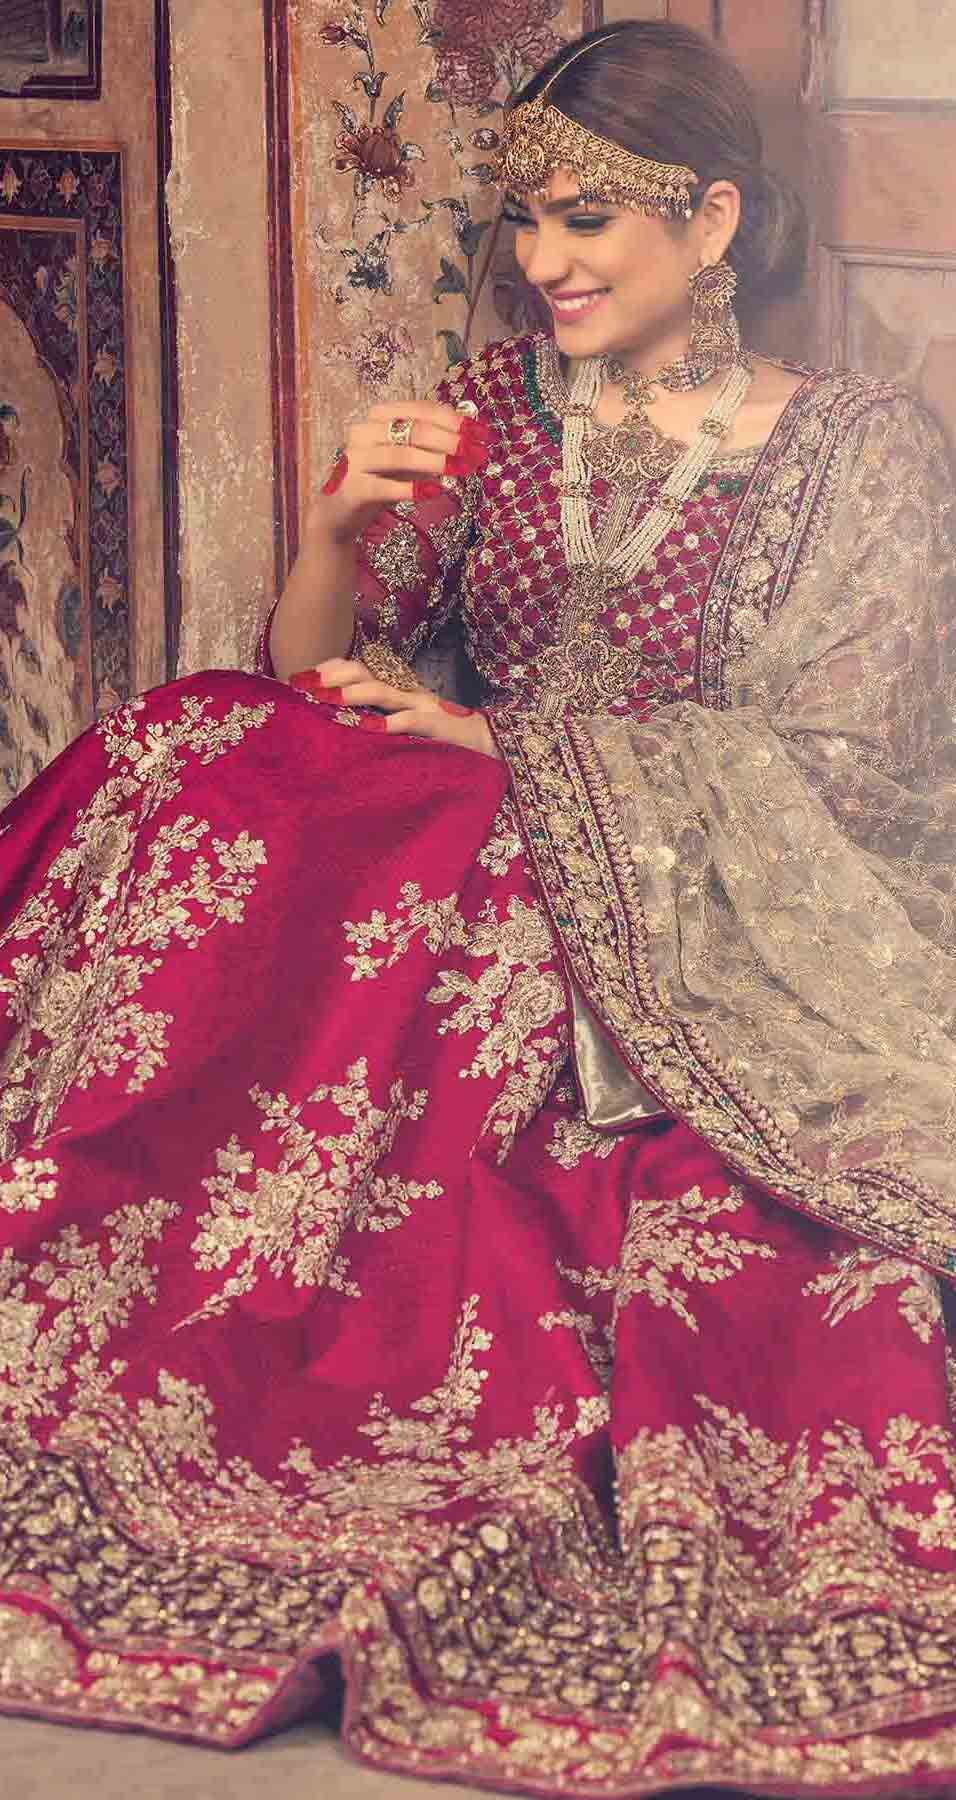 Pakistani Bridal Dresses In Red And Gold Colors 2021 2022 Indian Bridal Dress Bridal Lehenga Red Pakistani Bridal Dresses [ 1800 x 956 Pixel ]